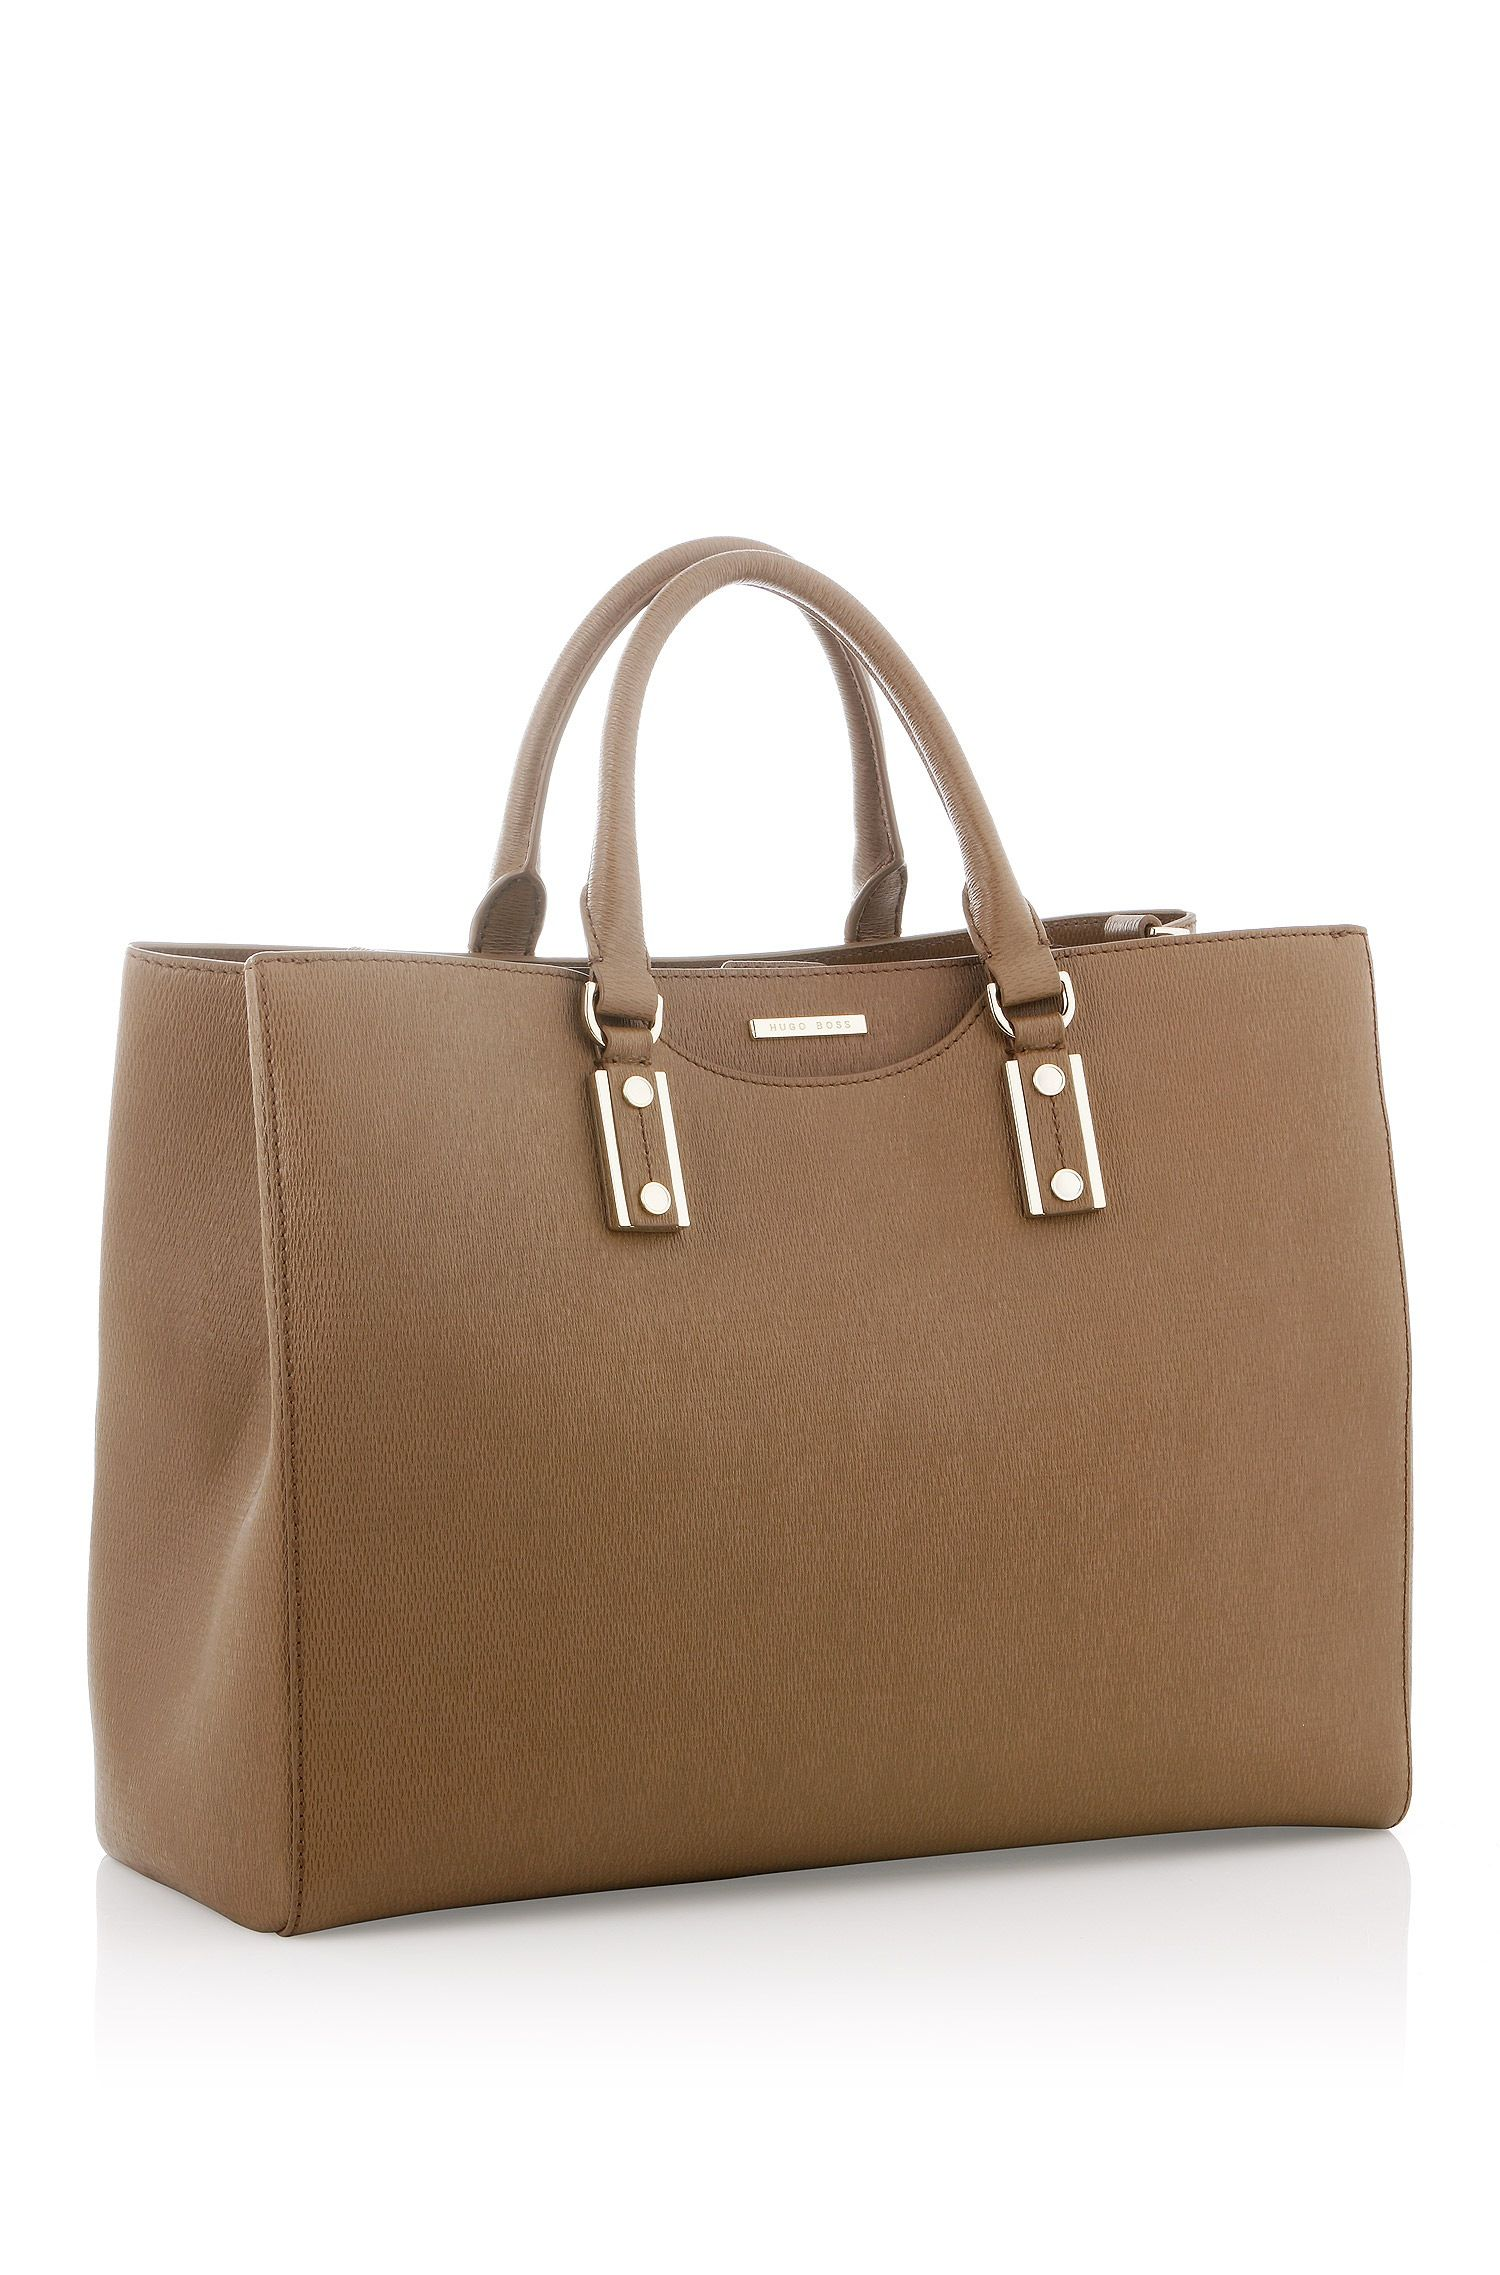 BOSS Shopper 'MailiaF' in leather with a grain kernel